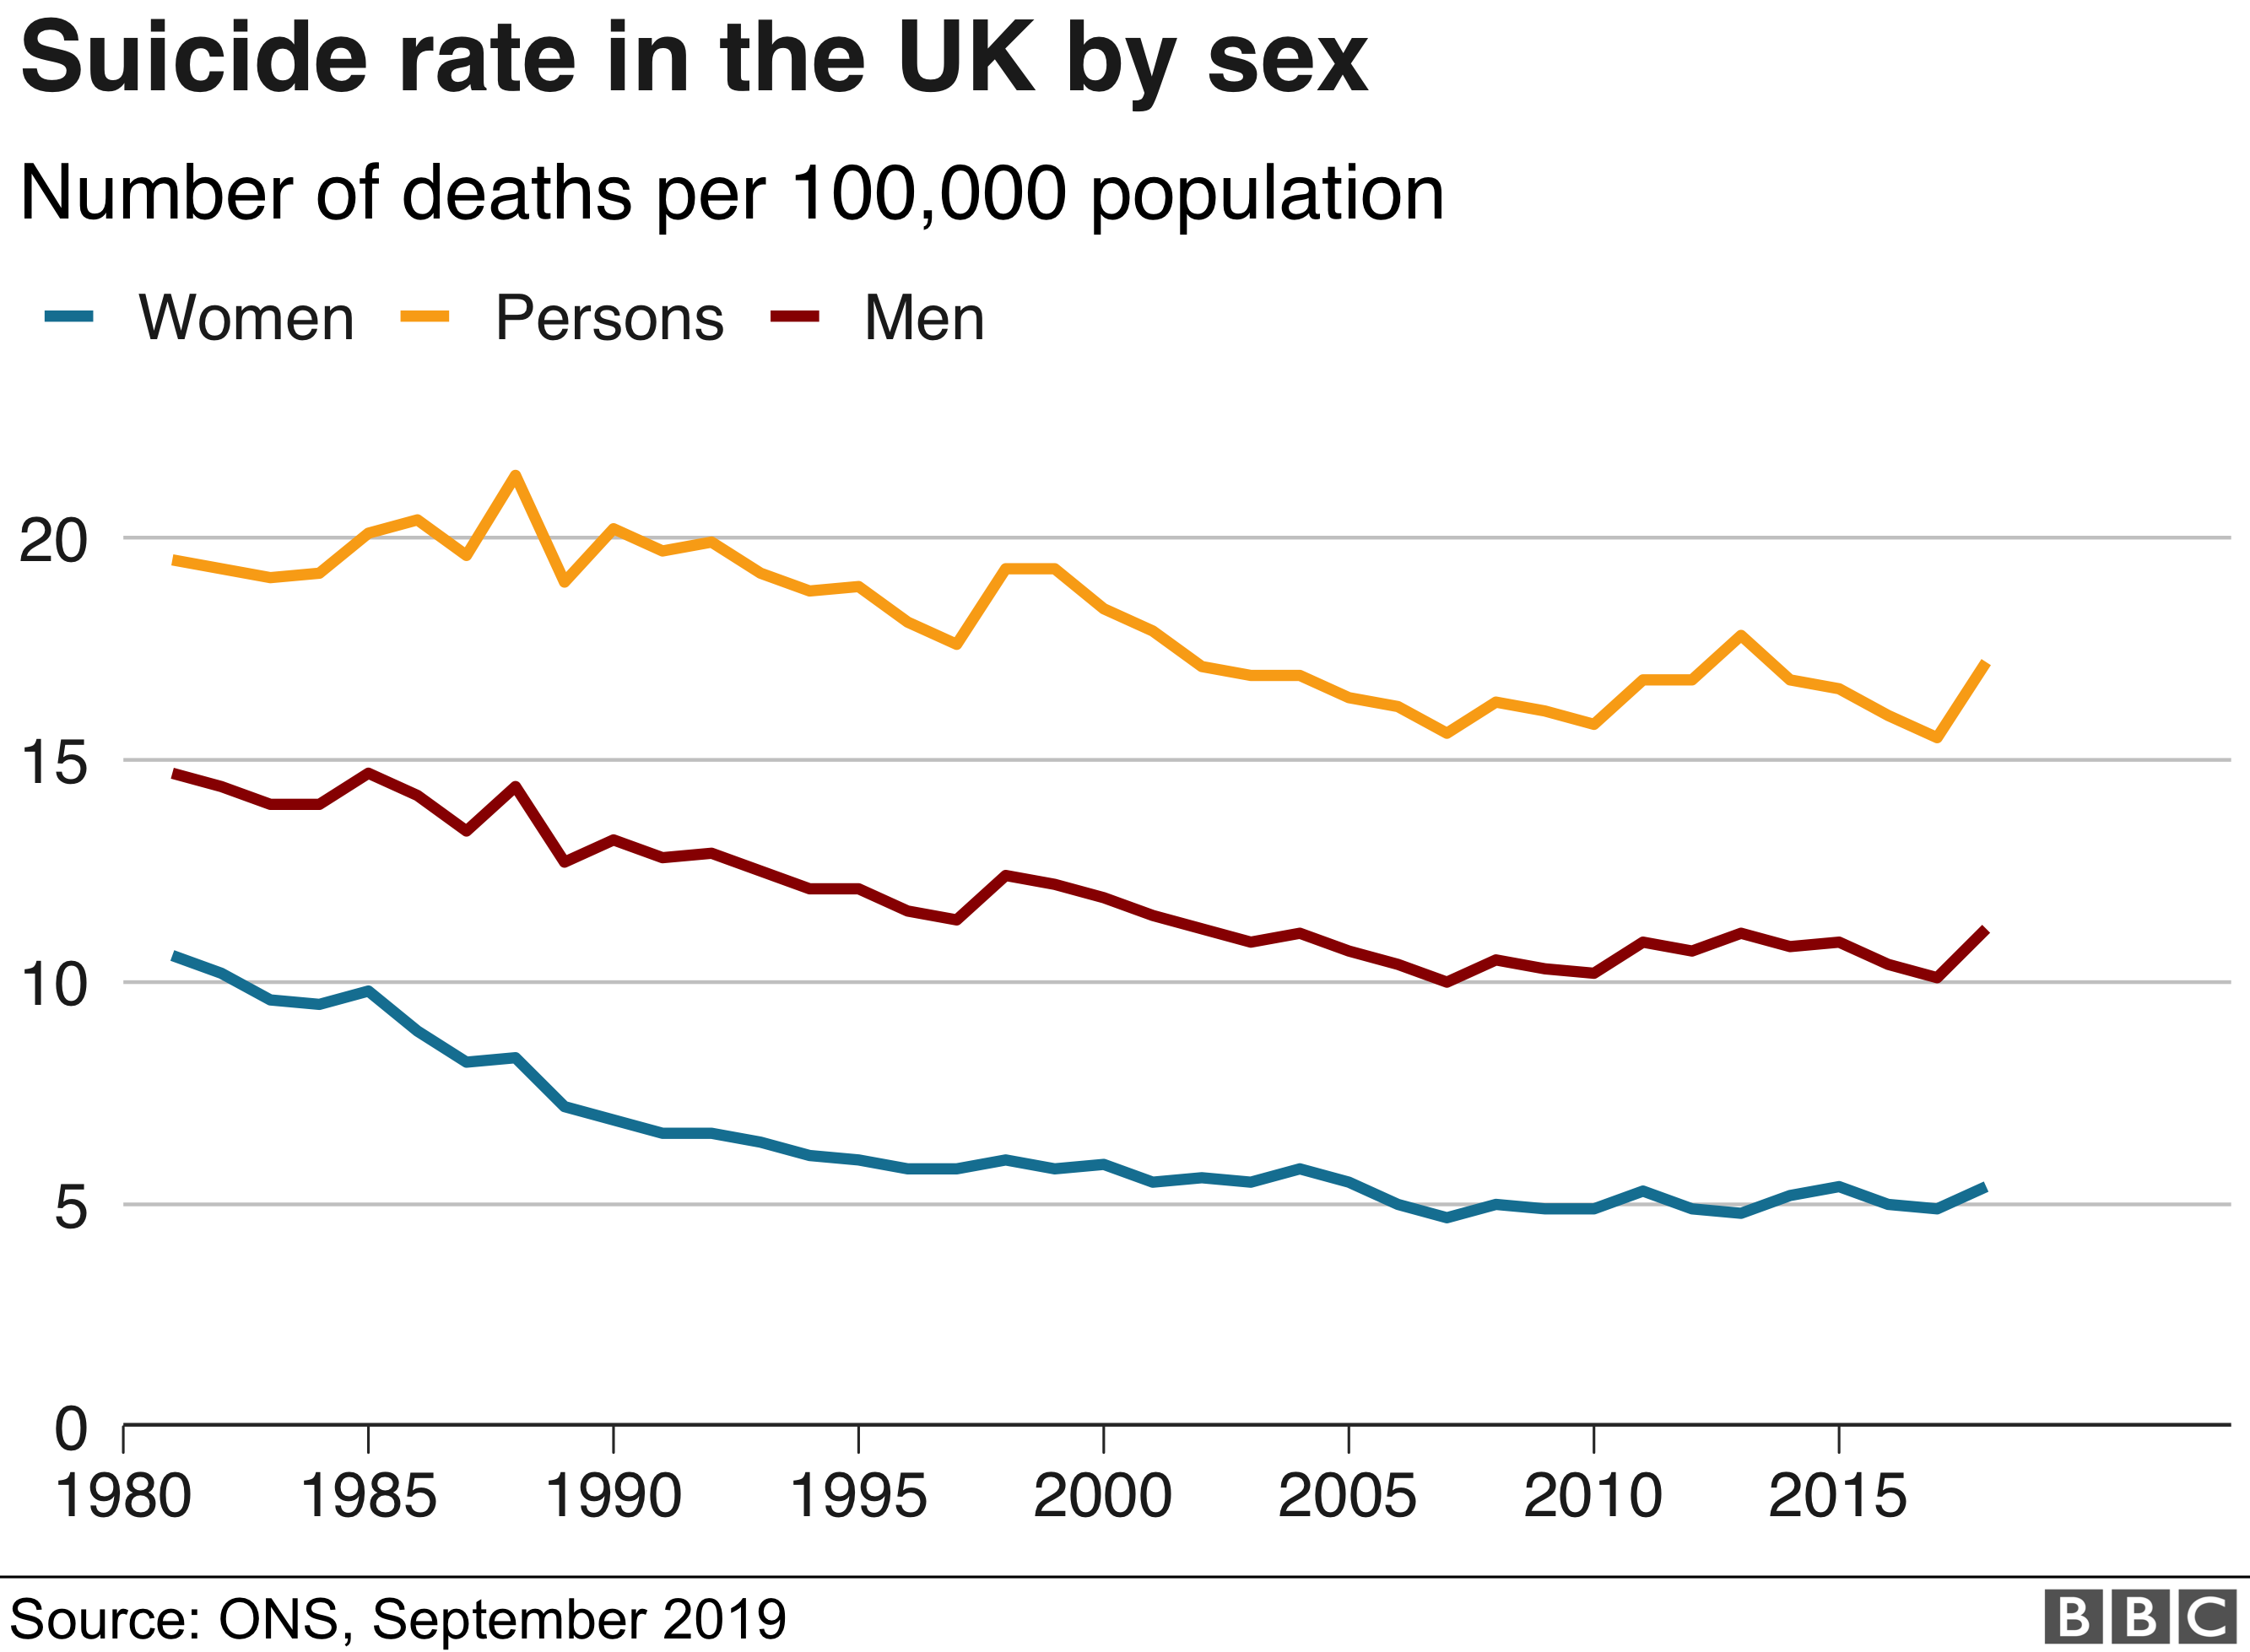 Chart showing suicide rate